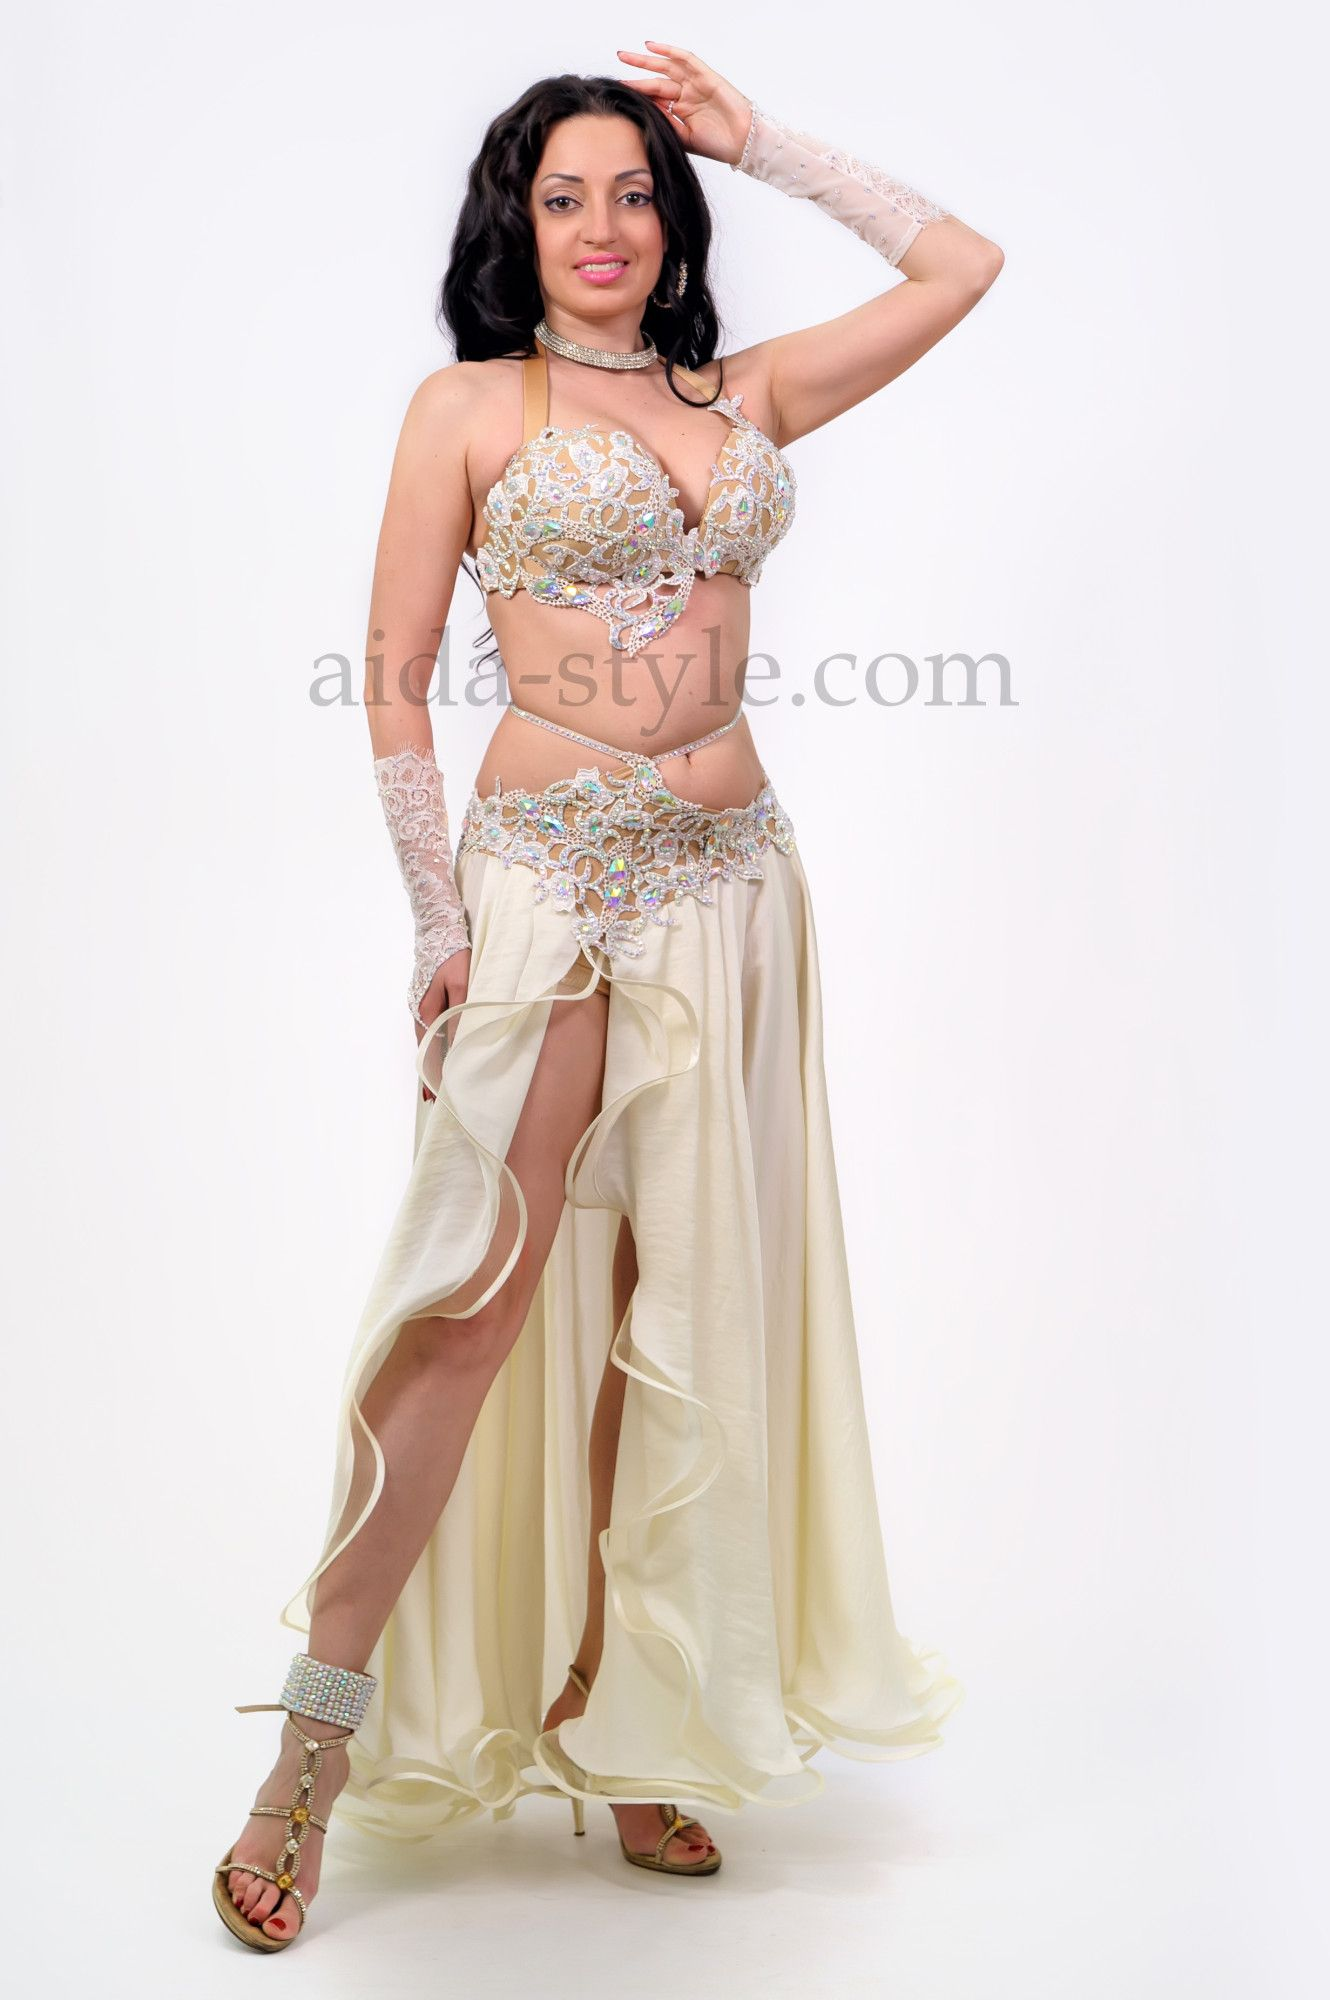 19fb0891ba24 Best Of Aida Style | Dance costumes and Dancing